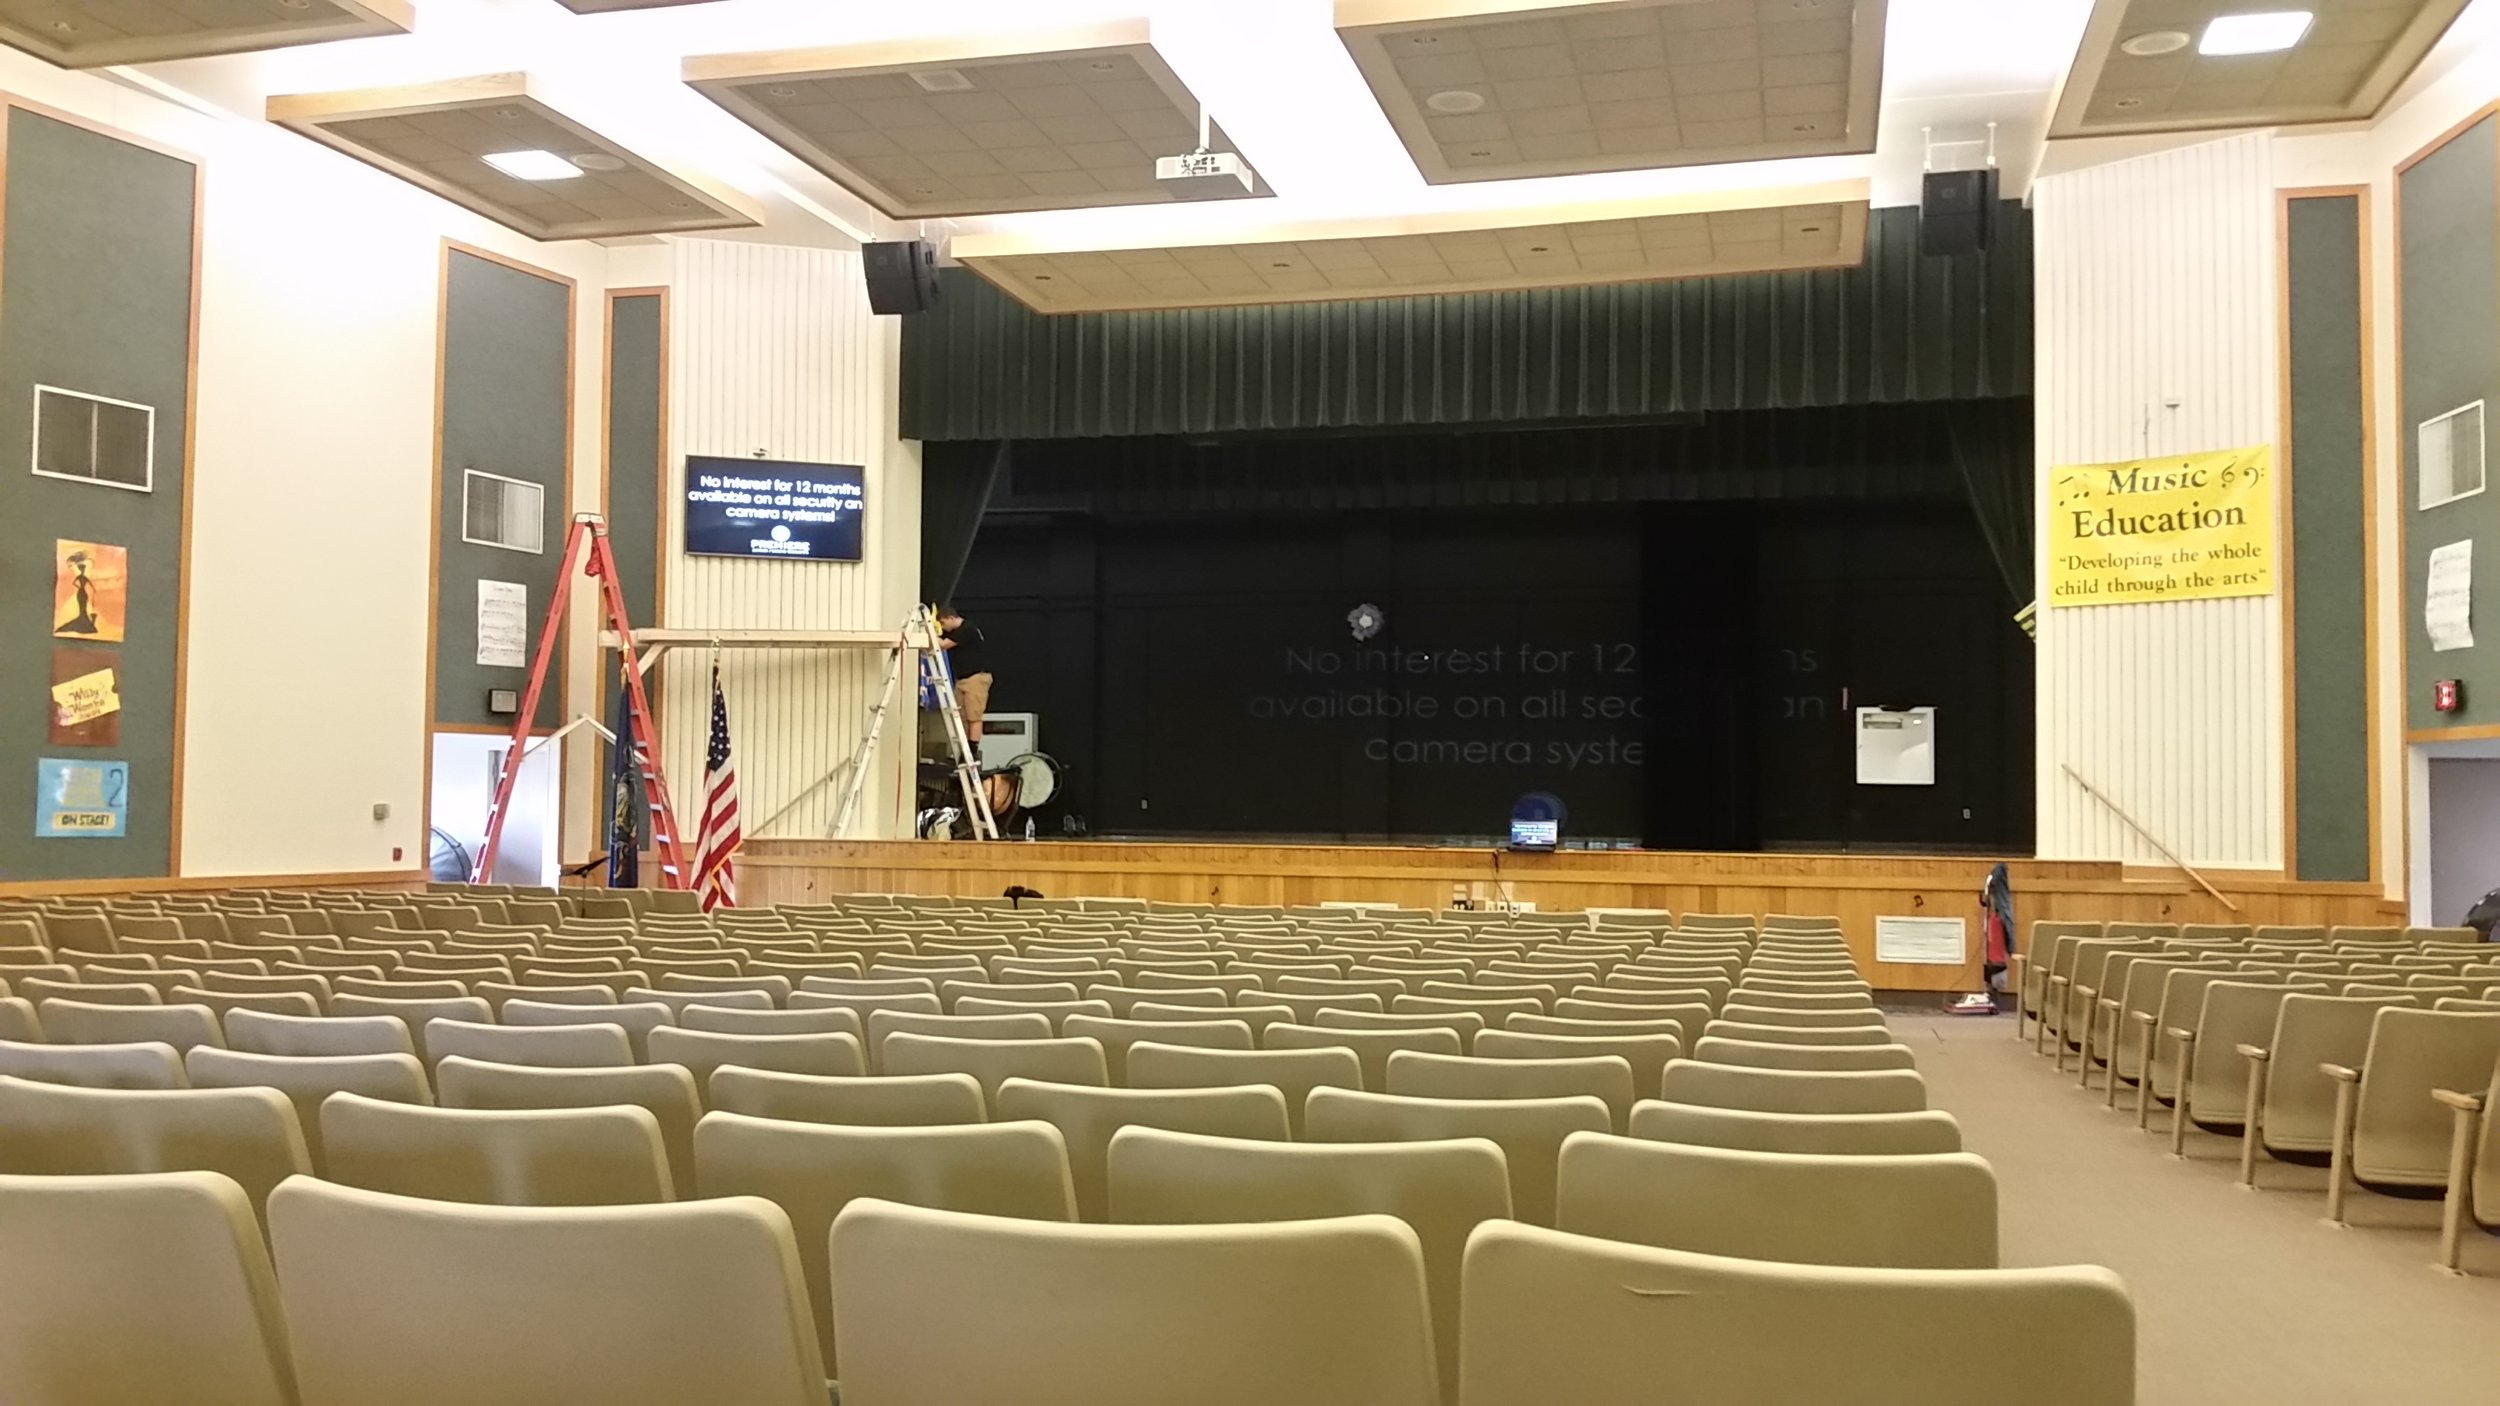 School auditorium projector system